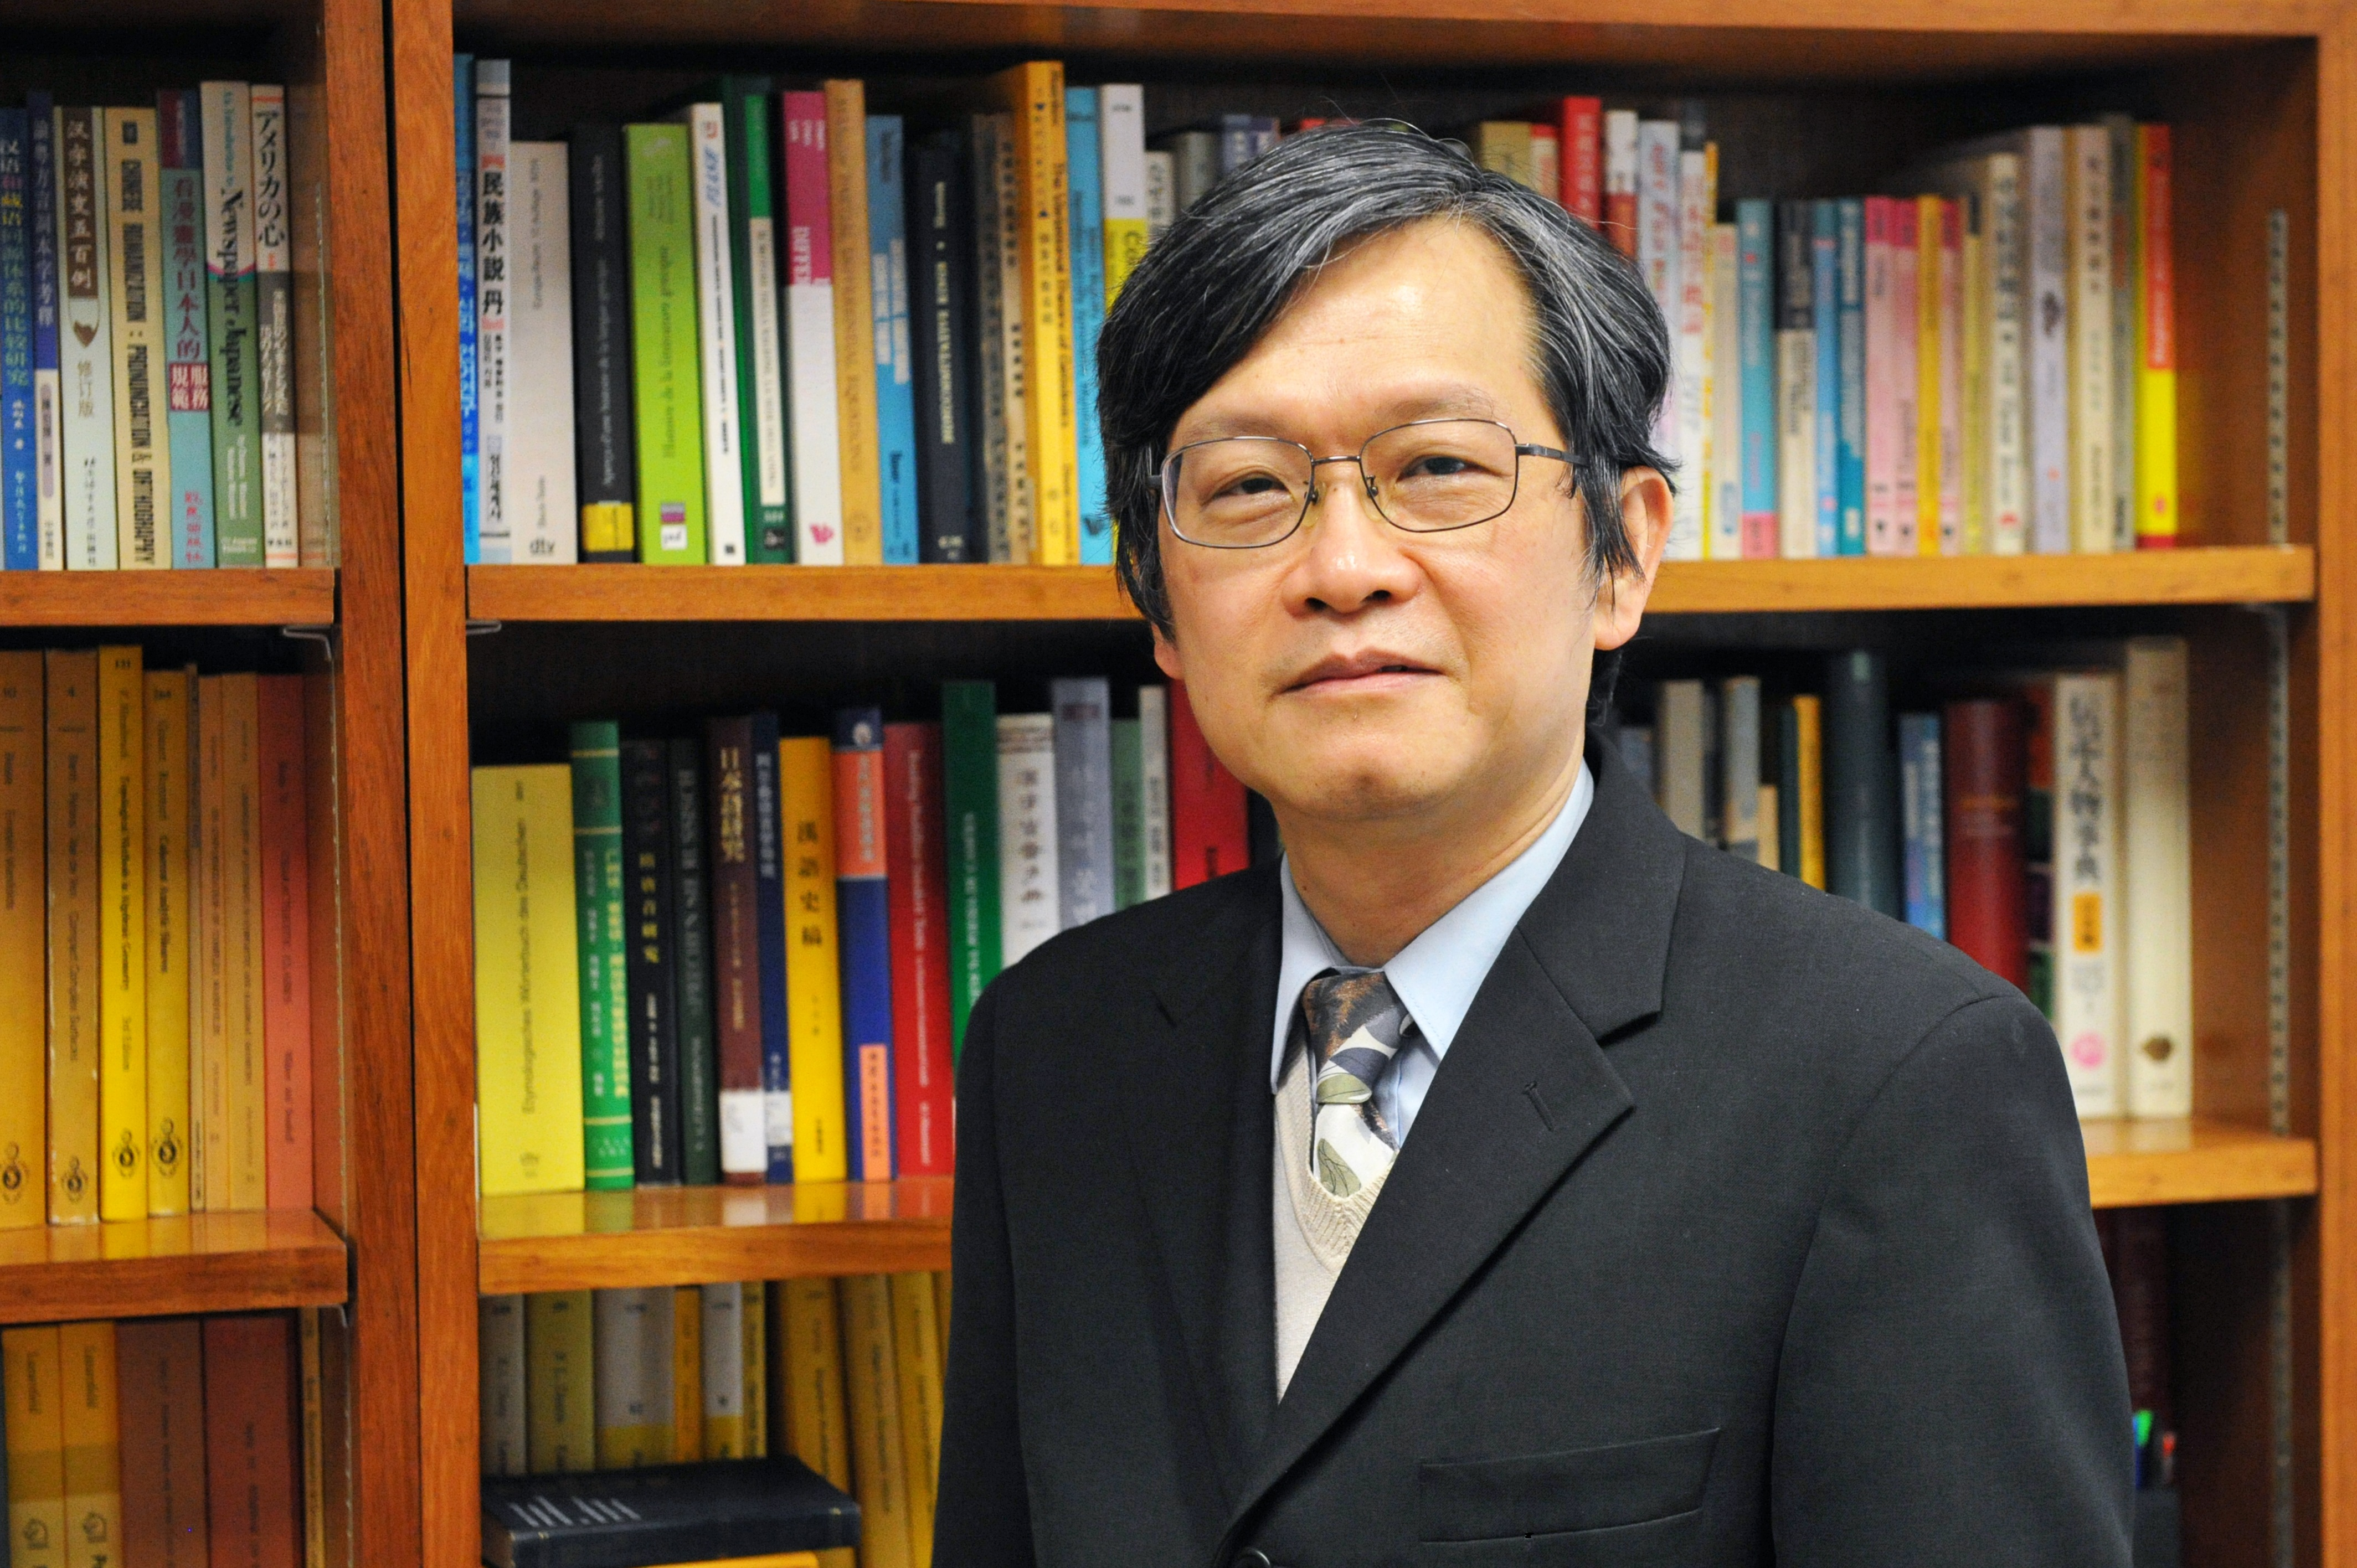 Prof MOK Ngai Ming was elected Member of The Academy of Sciences of Hong Kong in 2nd AGM